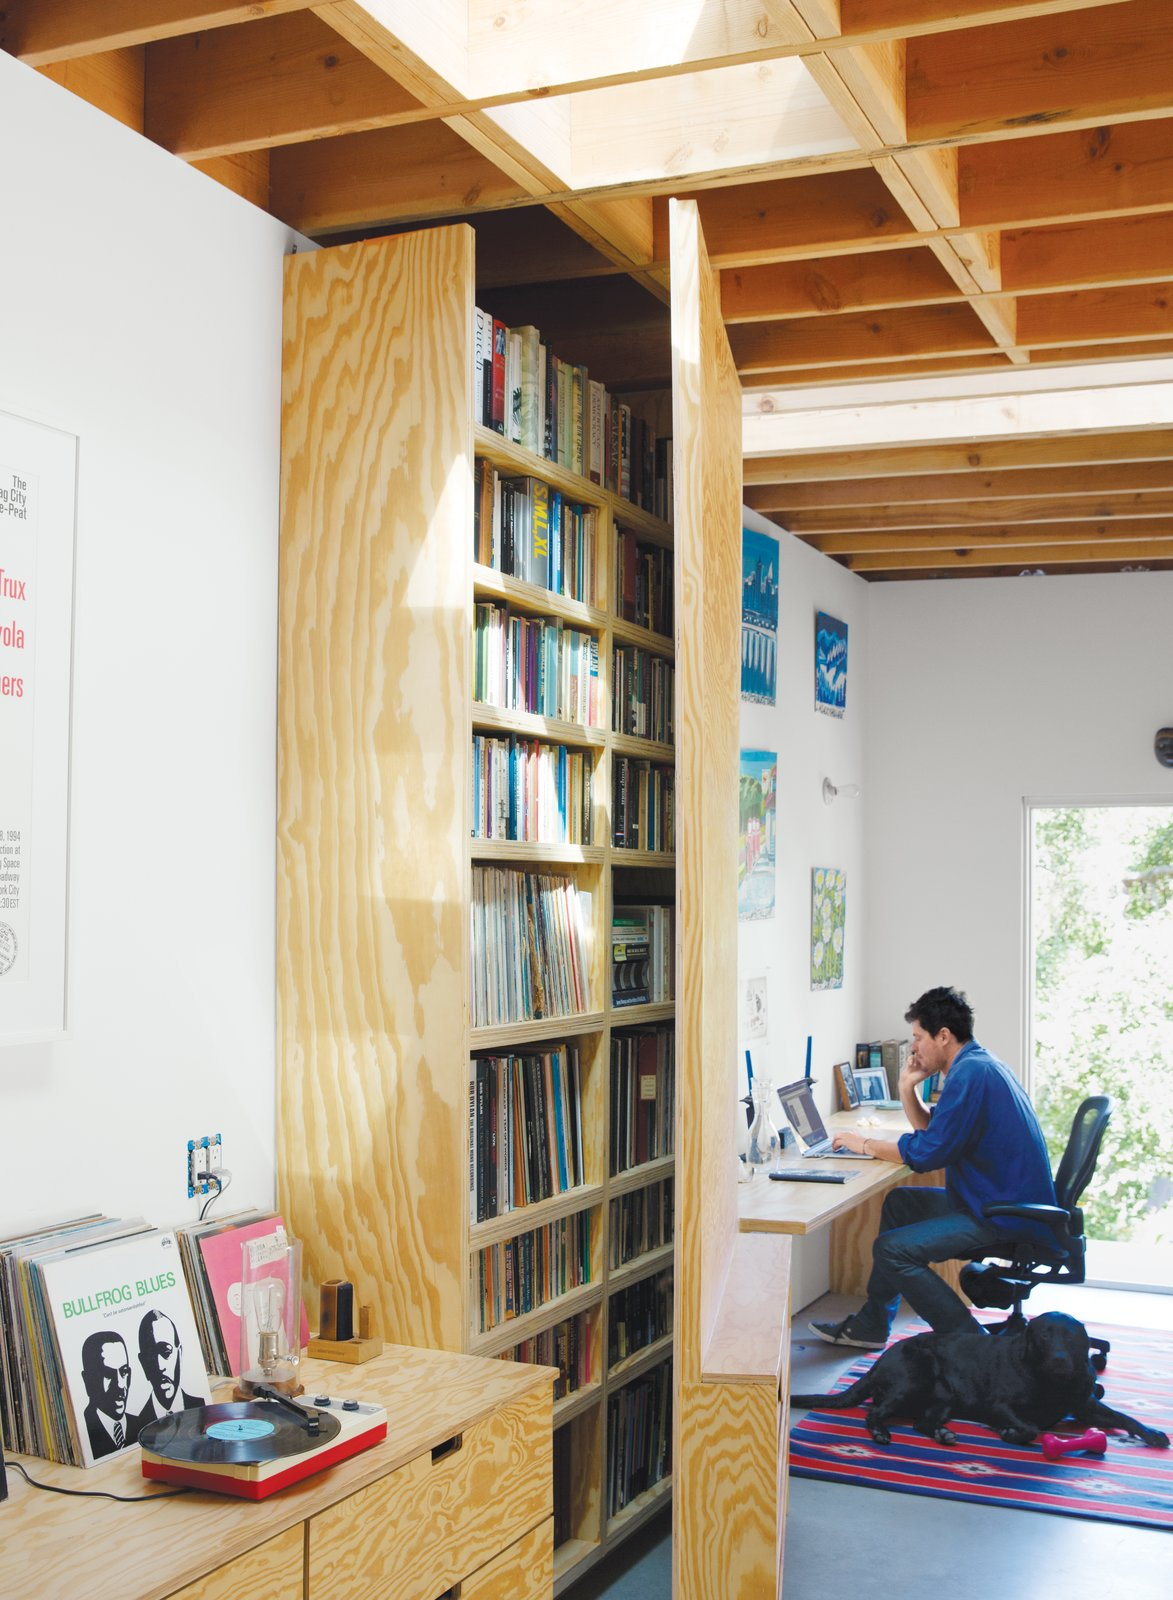 Designed by Jagoda, the door swings open to fit in front of a bookshelf.  Home Offices and Workspaces We Love by Matthew Keeshin from The Garage That's as Fun as the Living Room